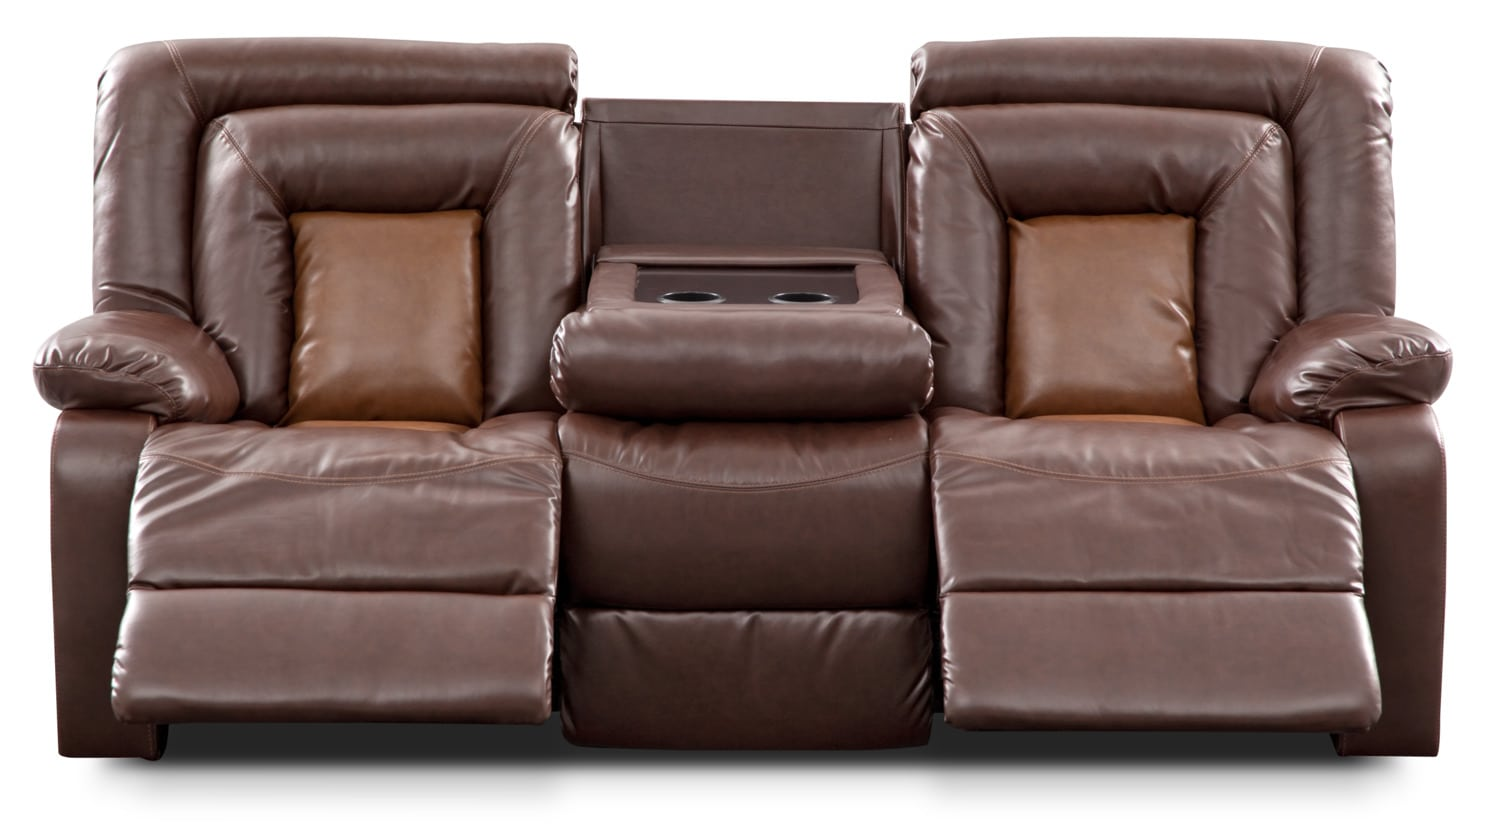 reclining classic dual cocoa recliner kong new power king ryder sofa